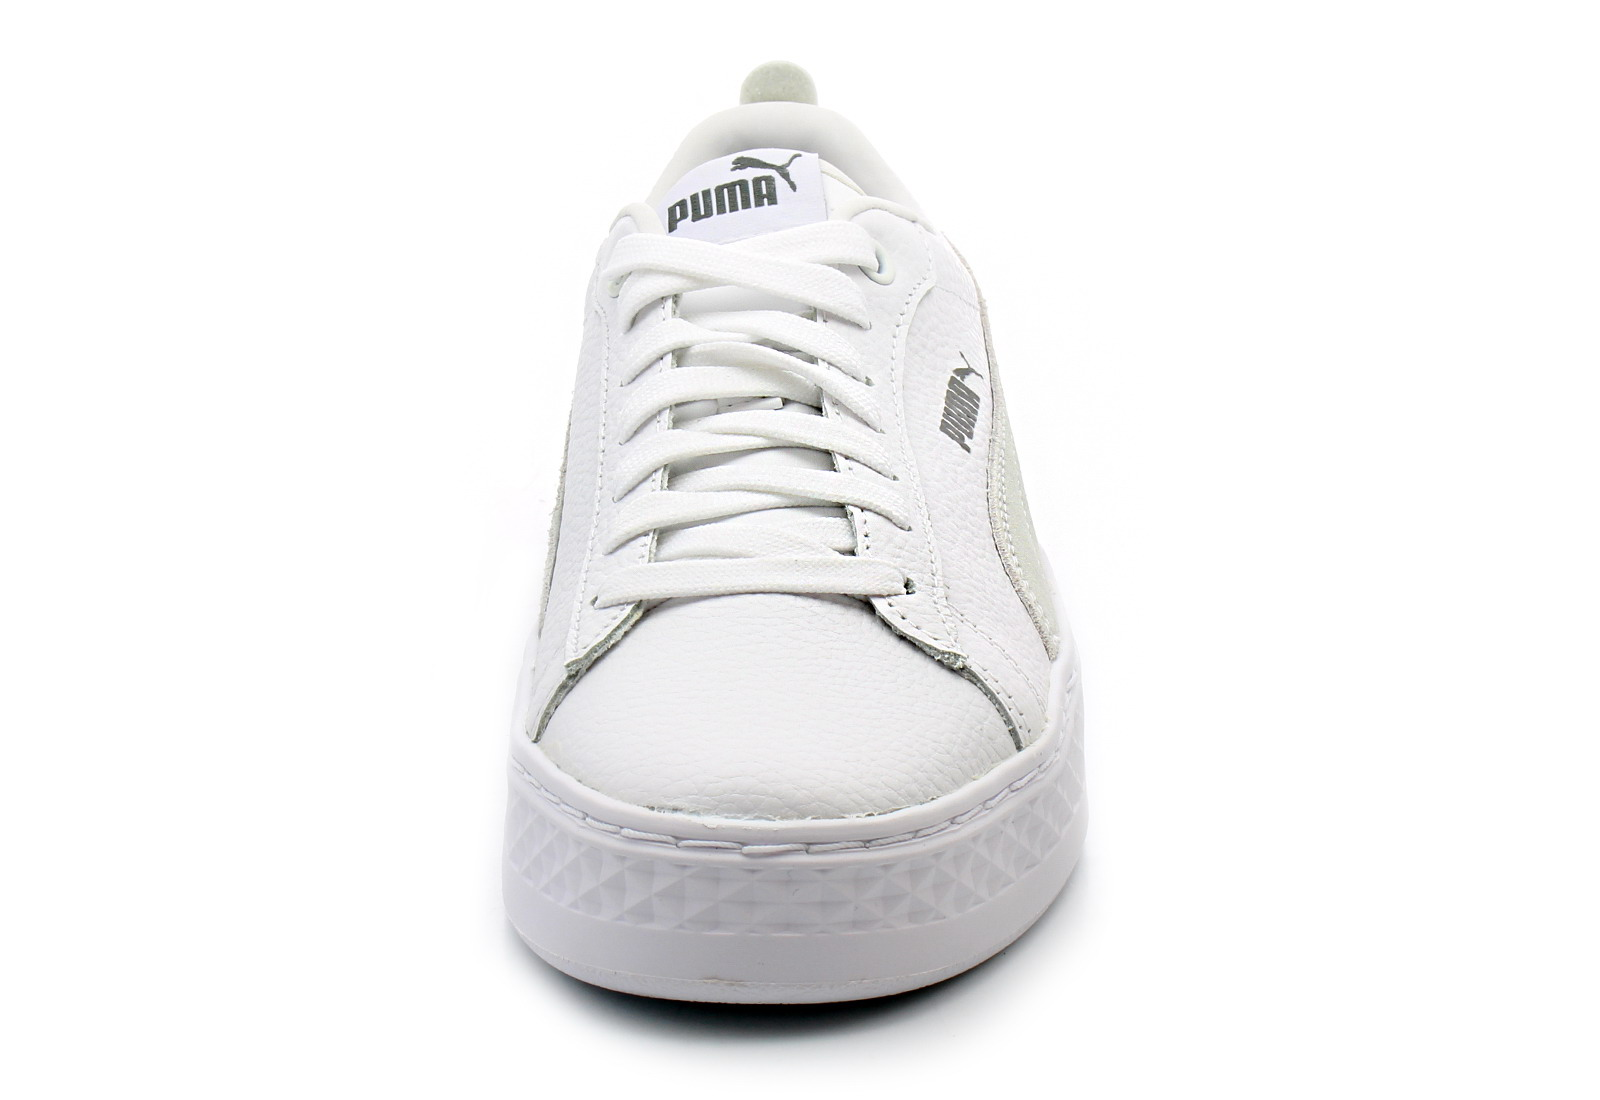 96e0f58ad1 Puma Cipő - Puma Smash Platform L - 36648706-wht - Office Shoes ...